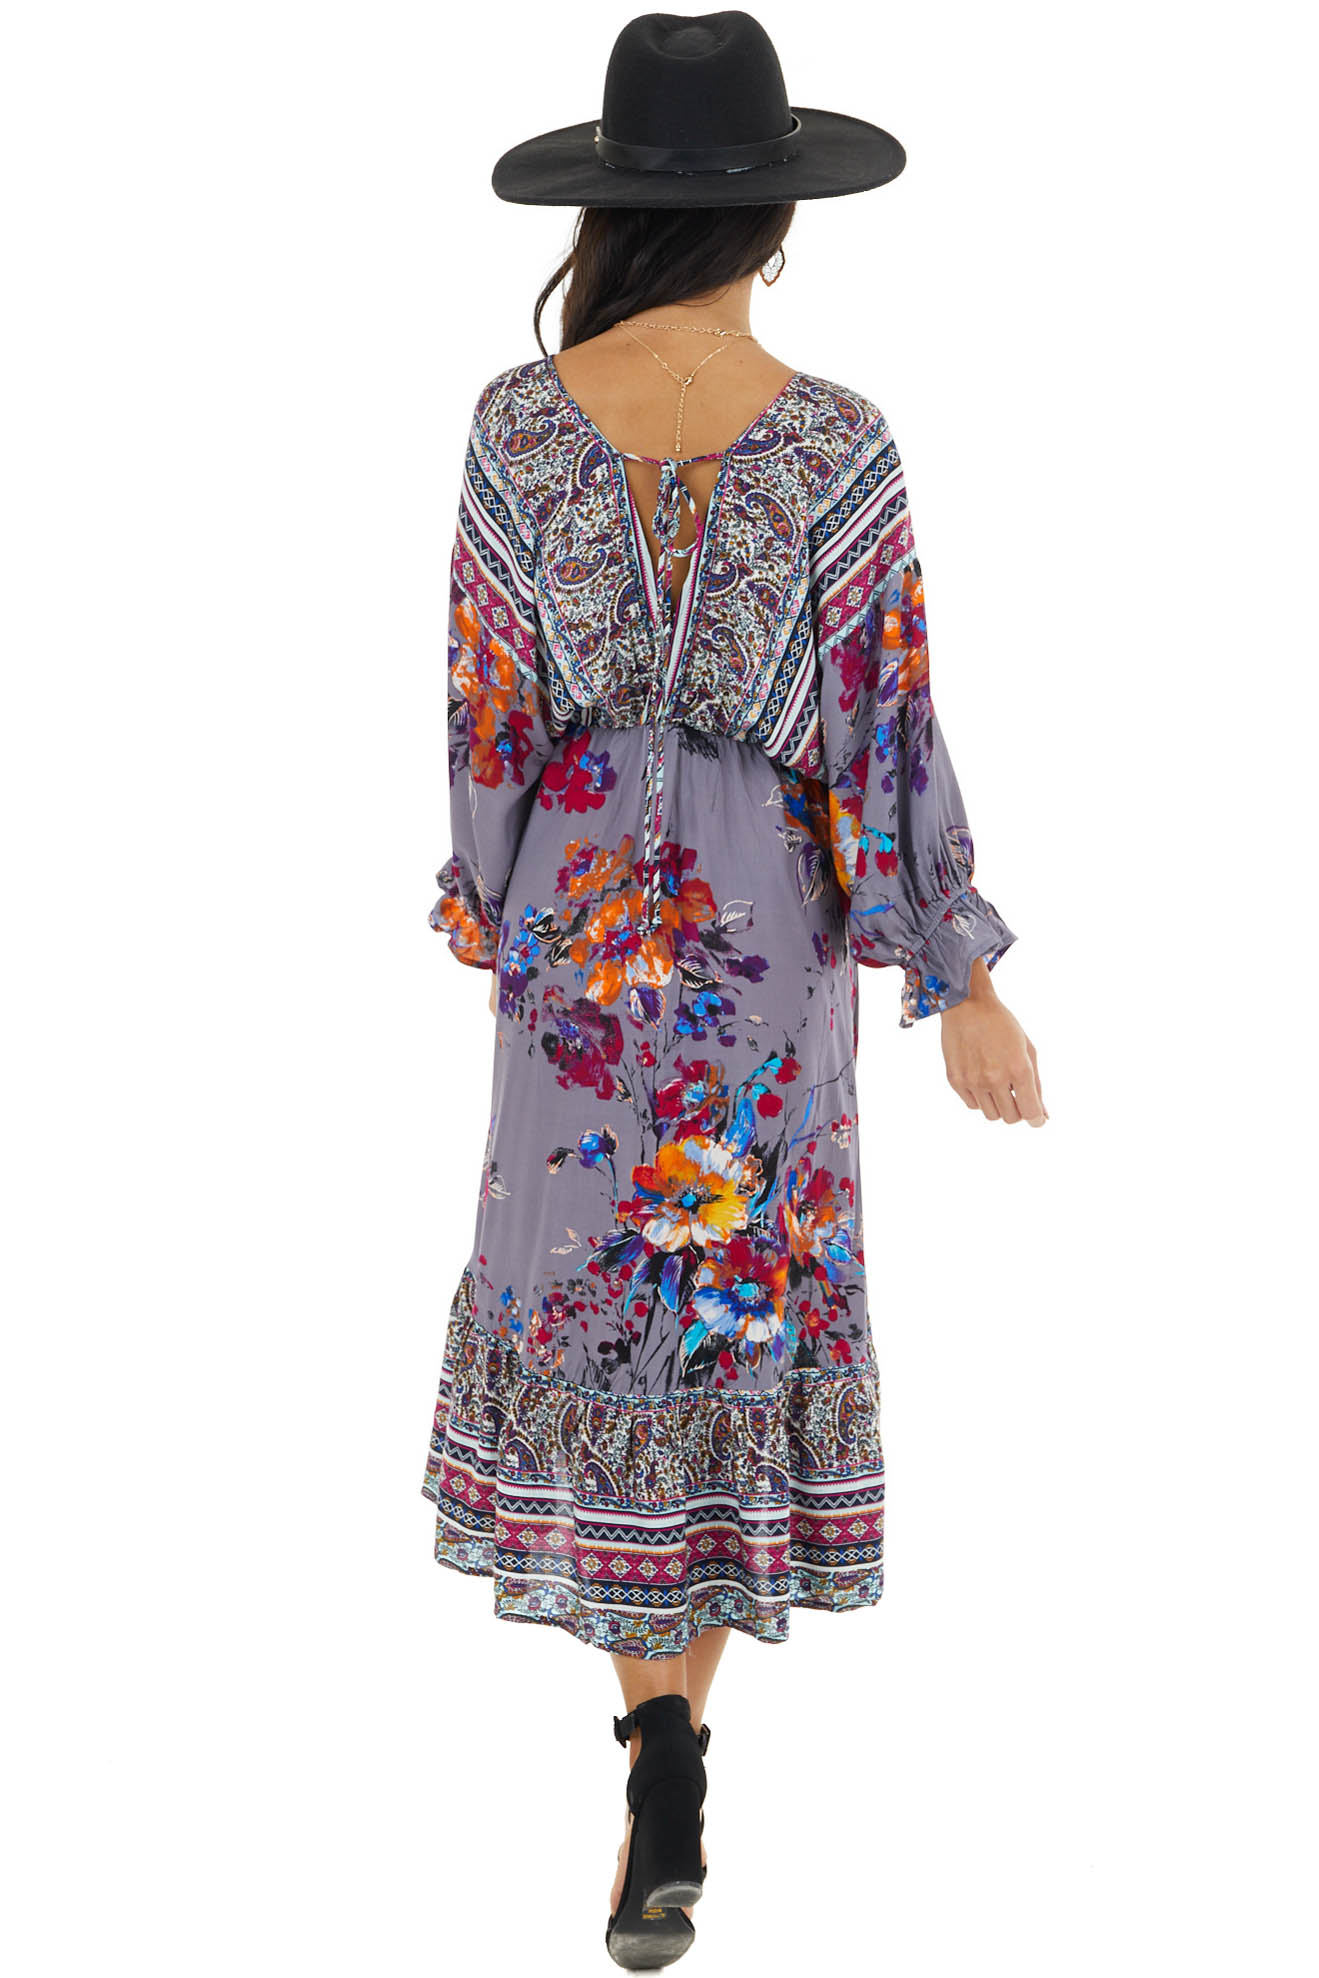 Slate Grey Floral Print Dress with Multiprint Contrasts